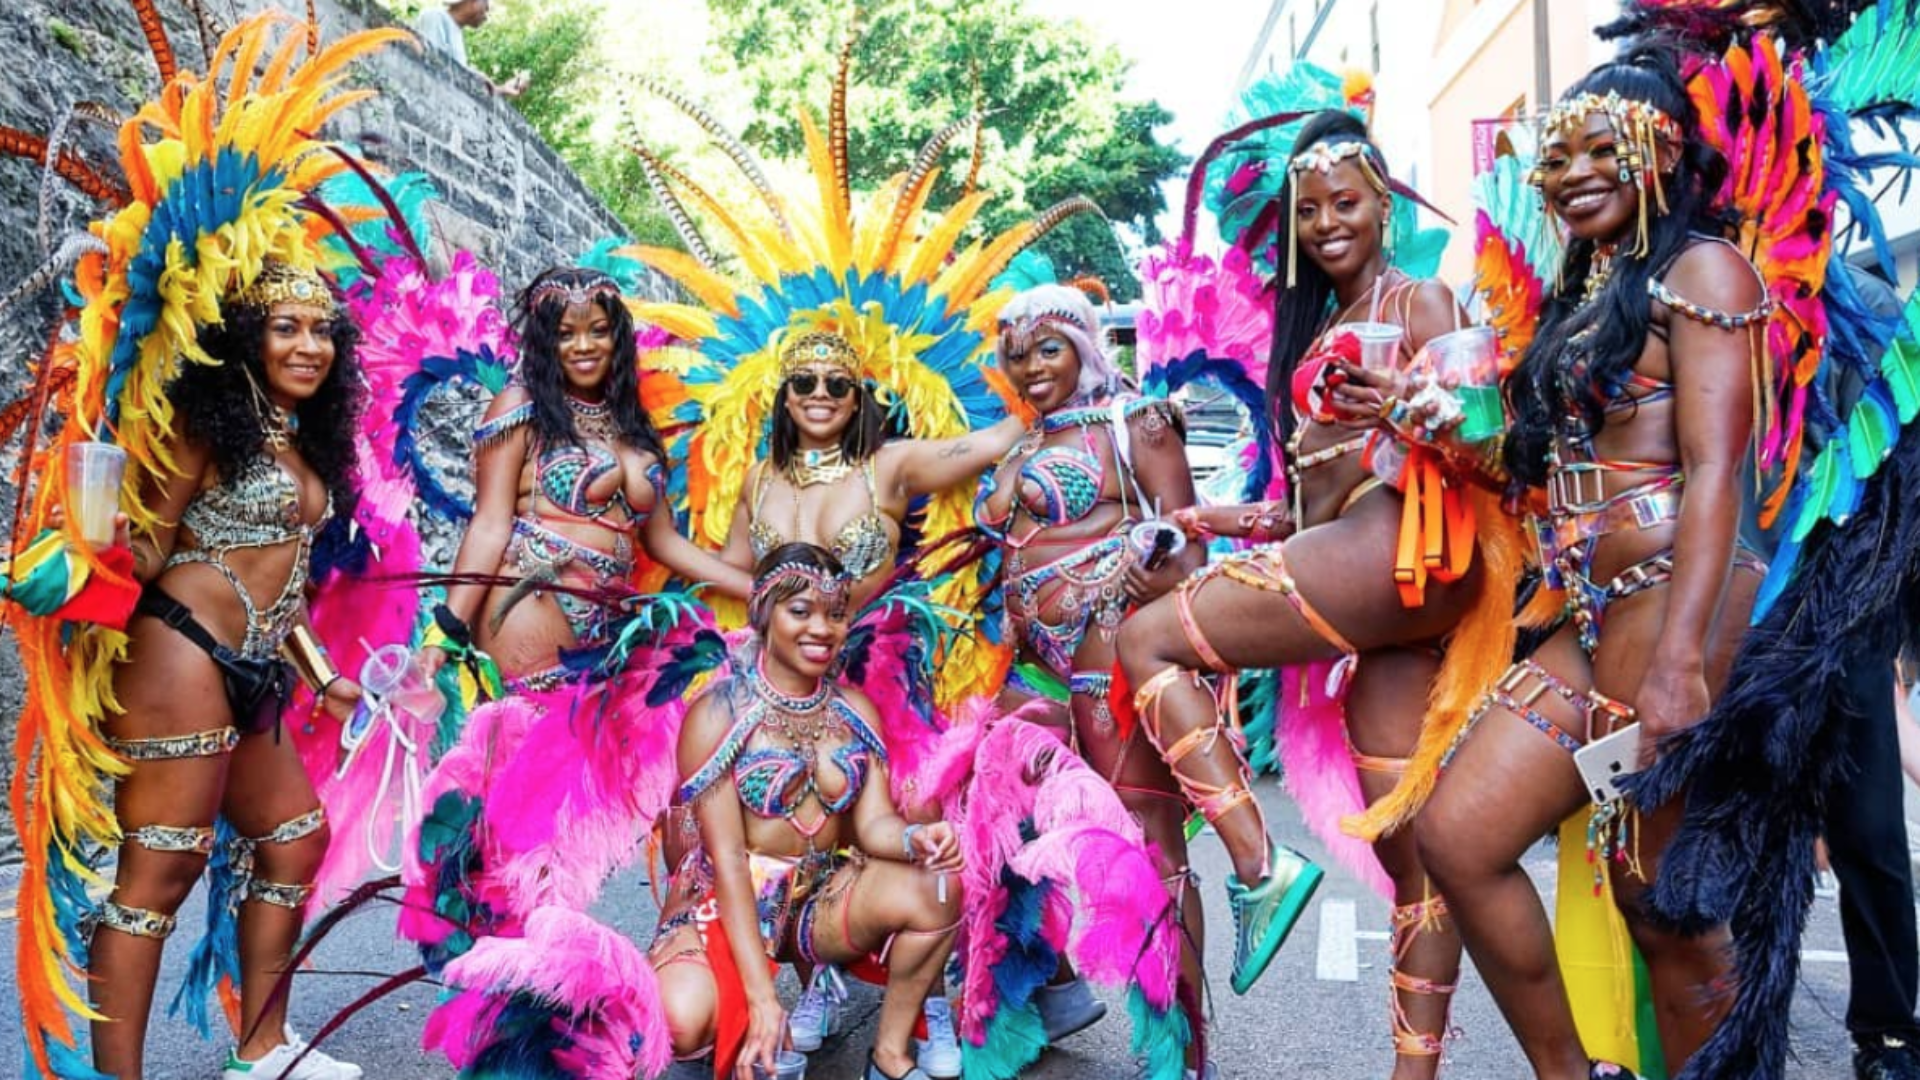 Free Up Yourself! 50 Times Bermuda Carnival Was A Celebration Of Joy And Freedom